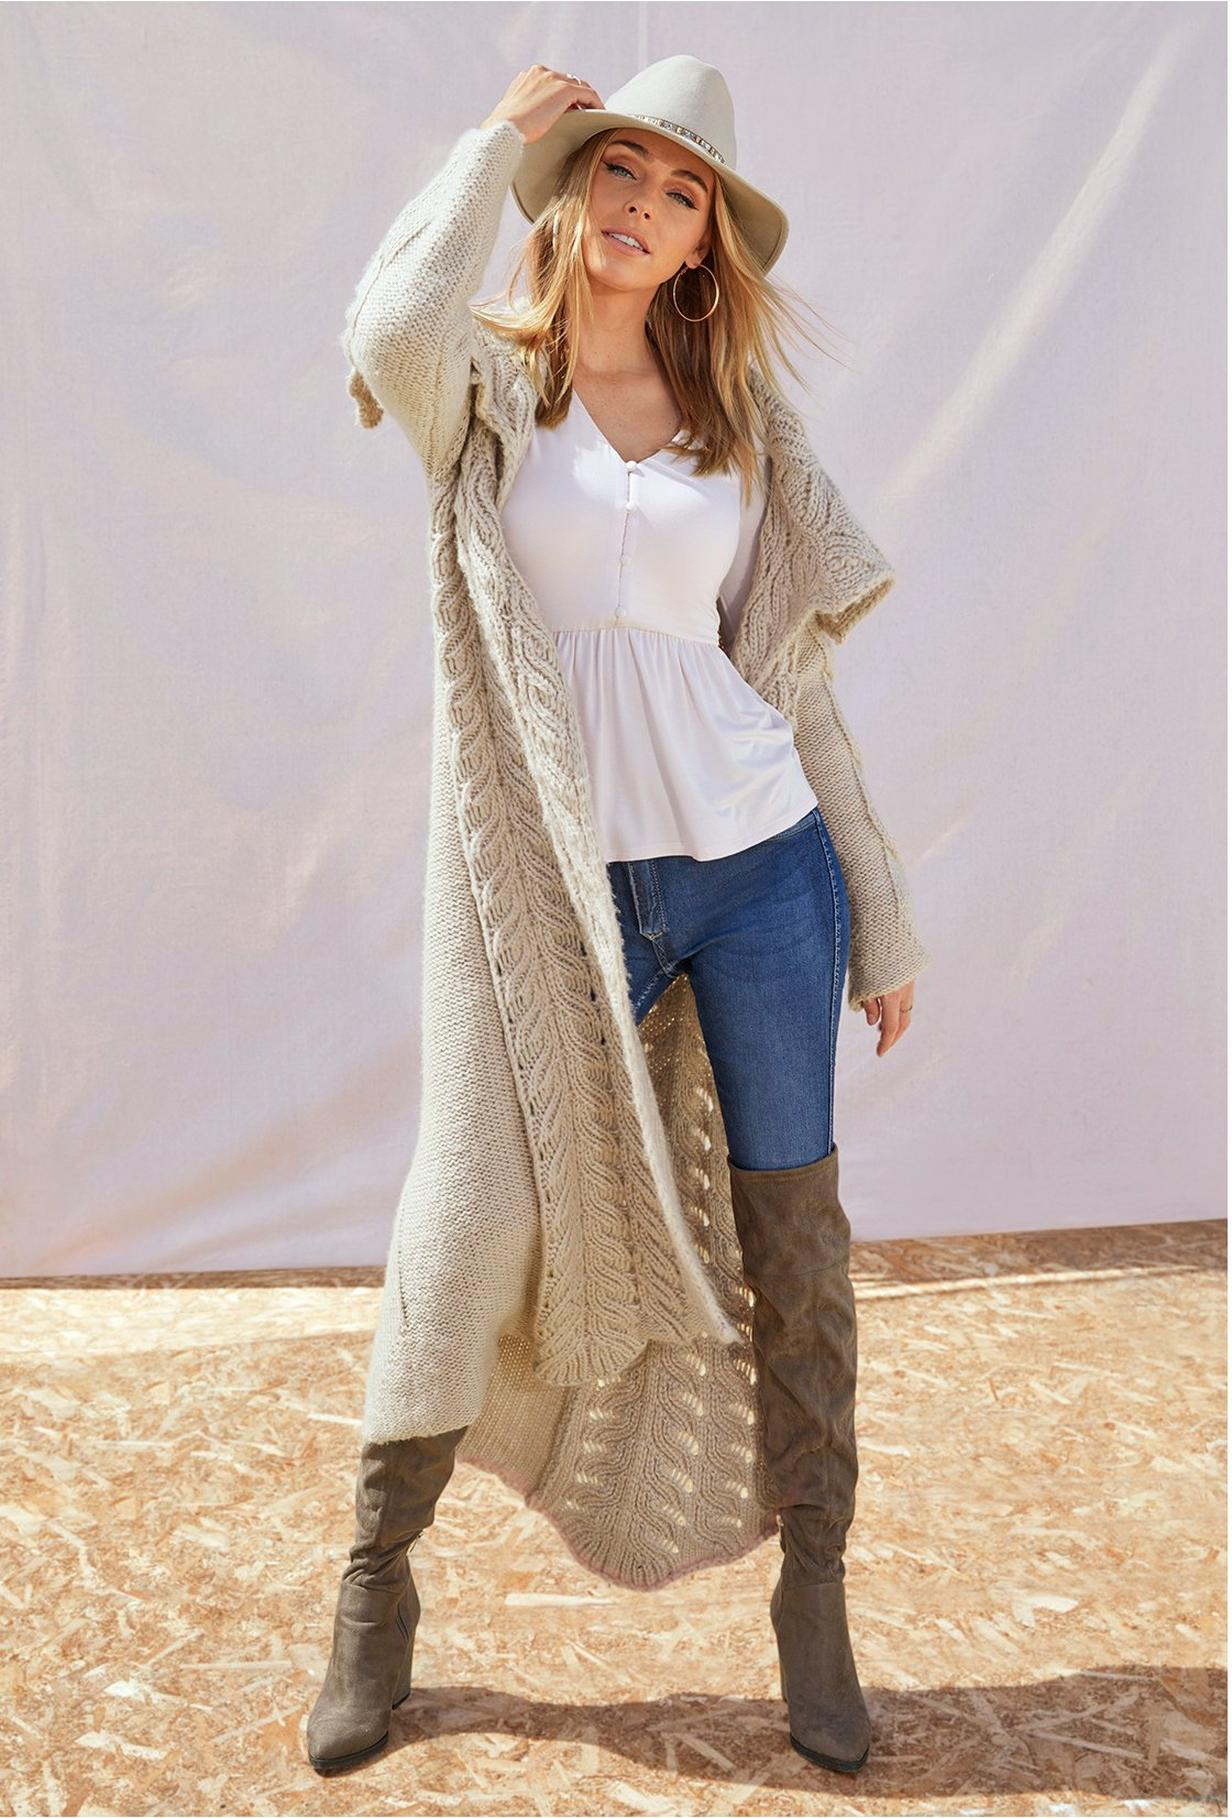 long cable sweater cardigan over poplin top, jeans, and boots